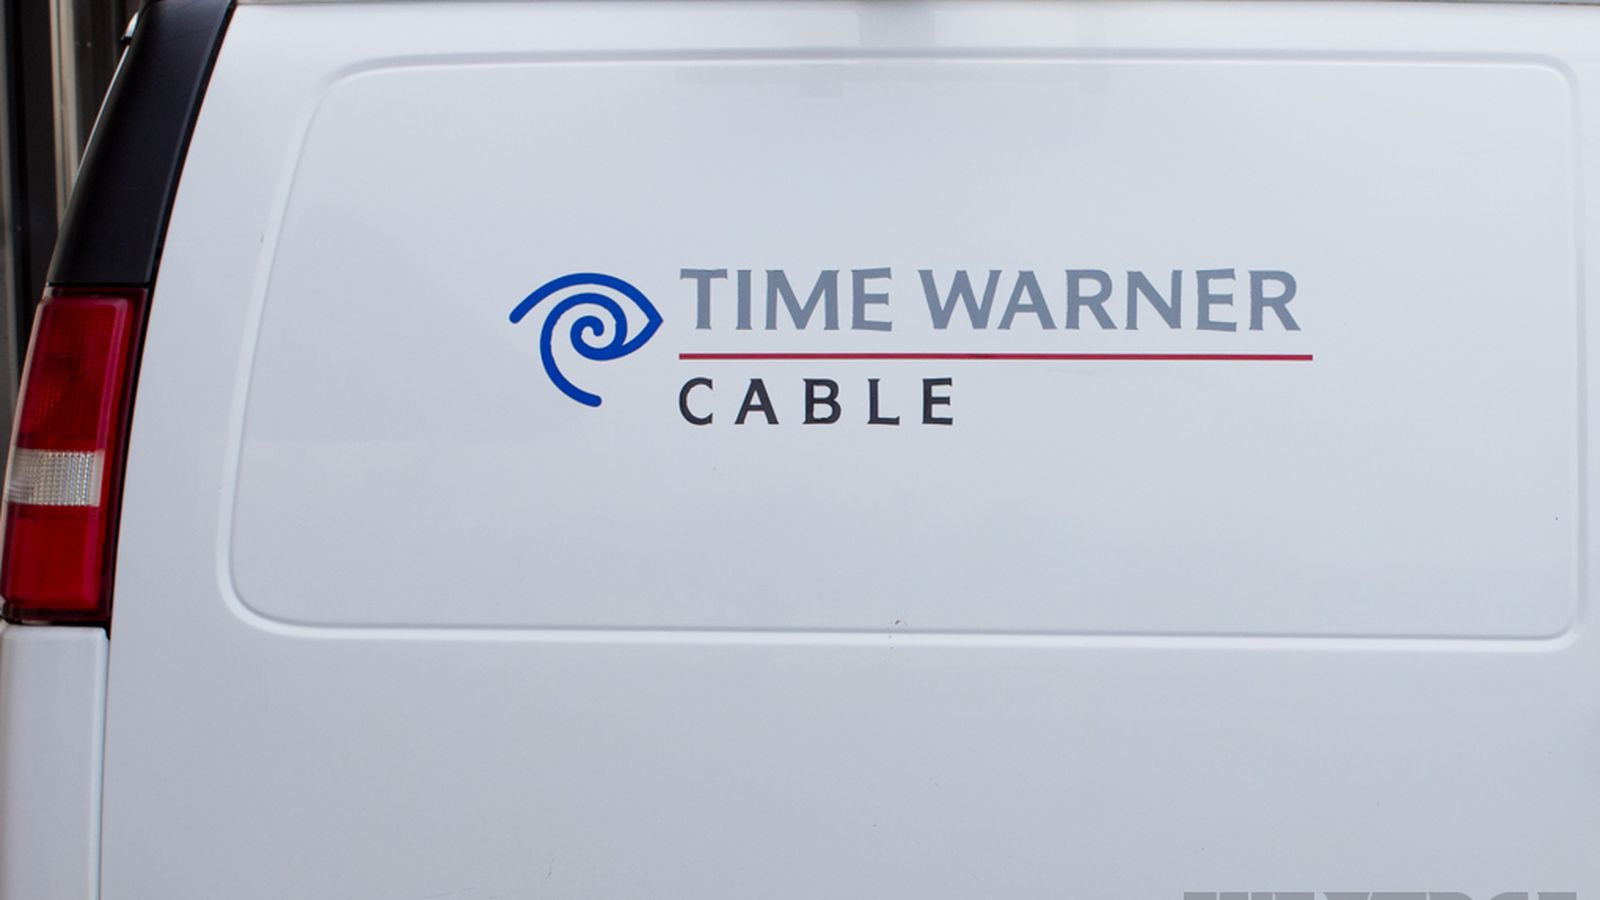 NY attorney general's office calls Time Warner Cable internet speeds 'abysmal' | The Verge